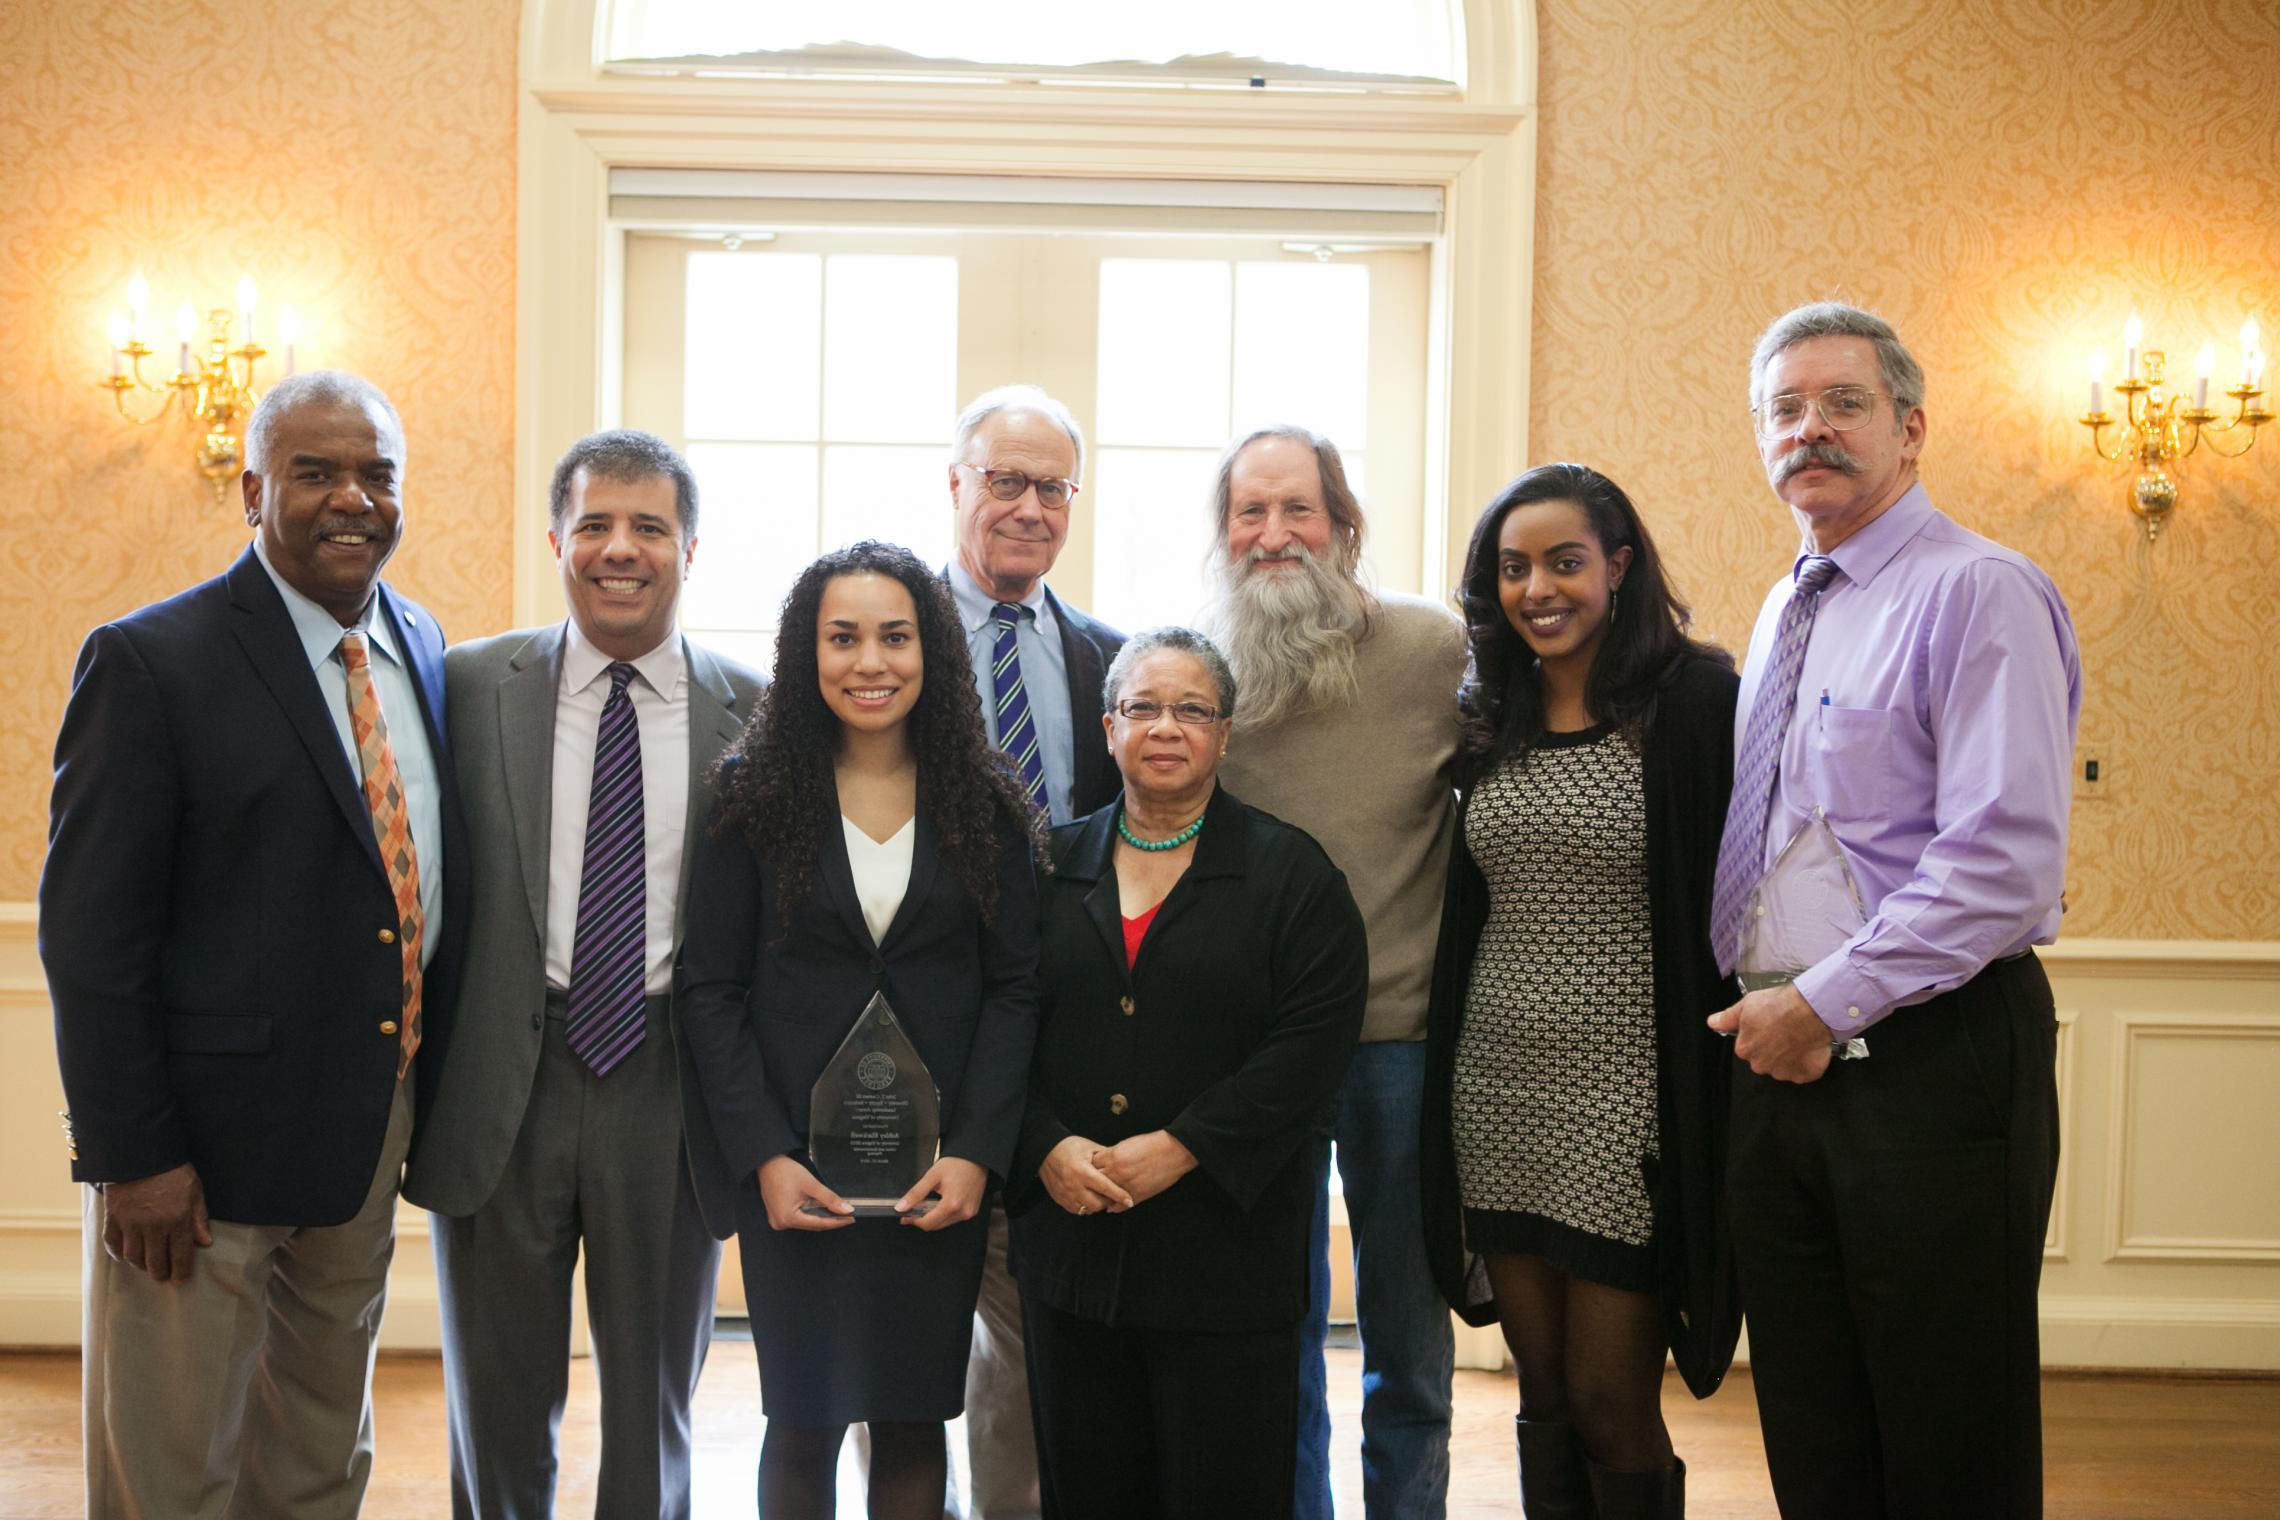 Award winners and others gathered at a previous luncheon: from left, Dr. Marcus L. Martin, Kim Forde-Mazrui, Ashley Blackwell, former President John T. Casteen III, Angela Davis, Bob Covert, Hajar Ahmed and Joel Hockensmith.